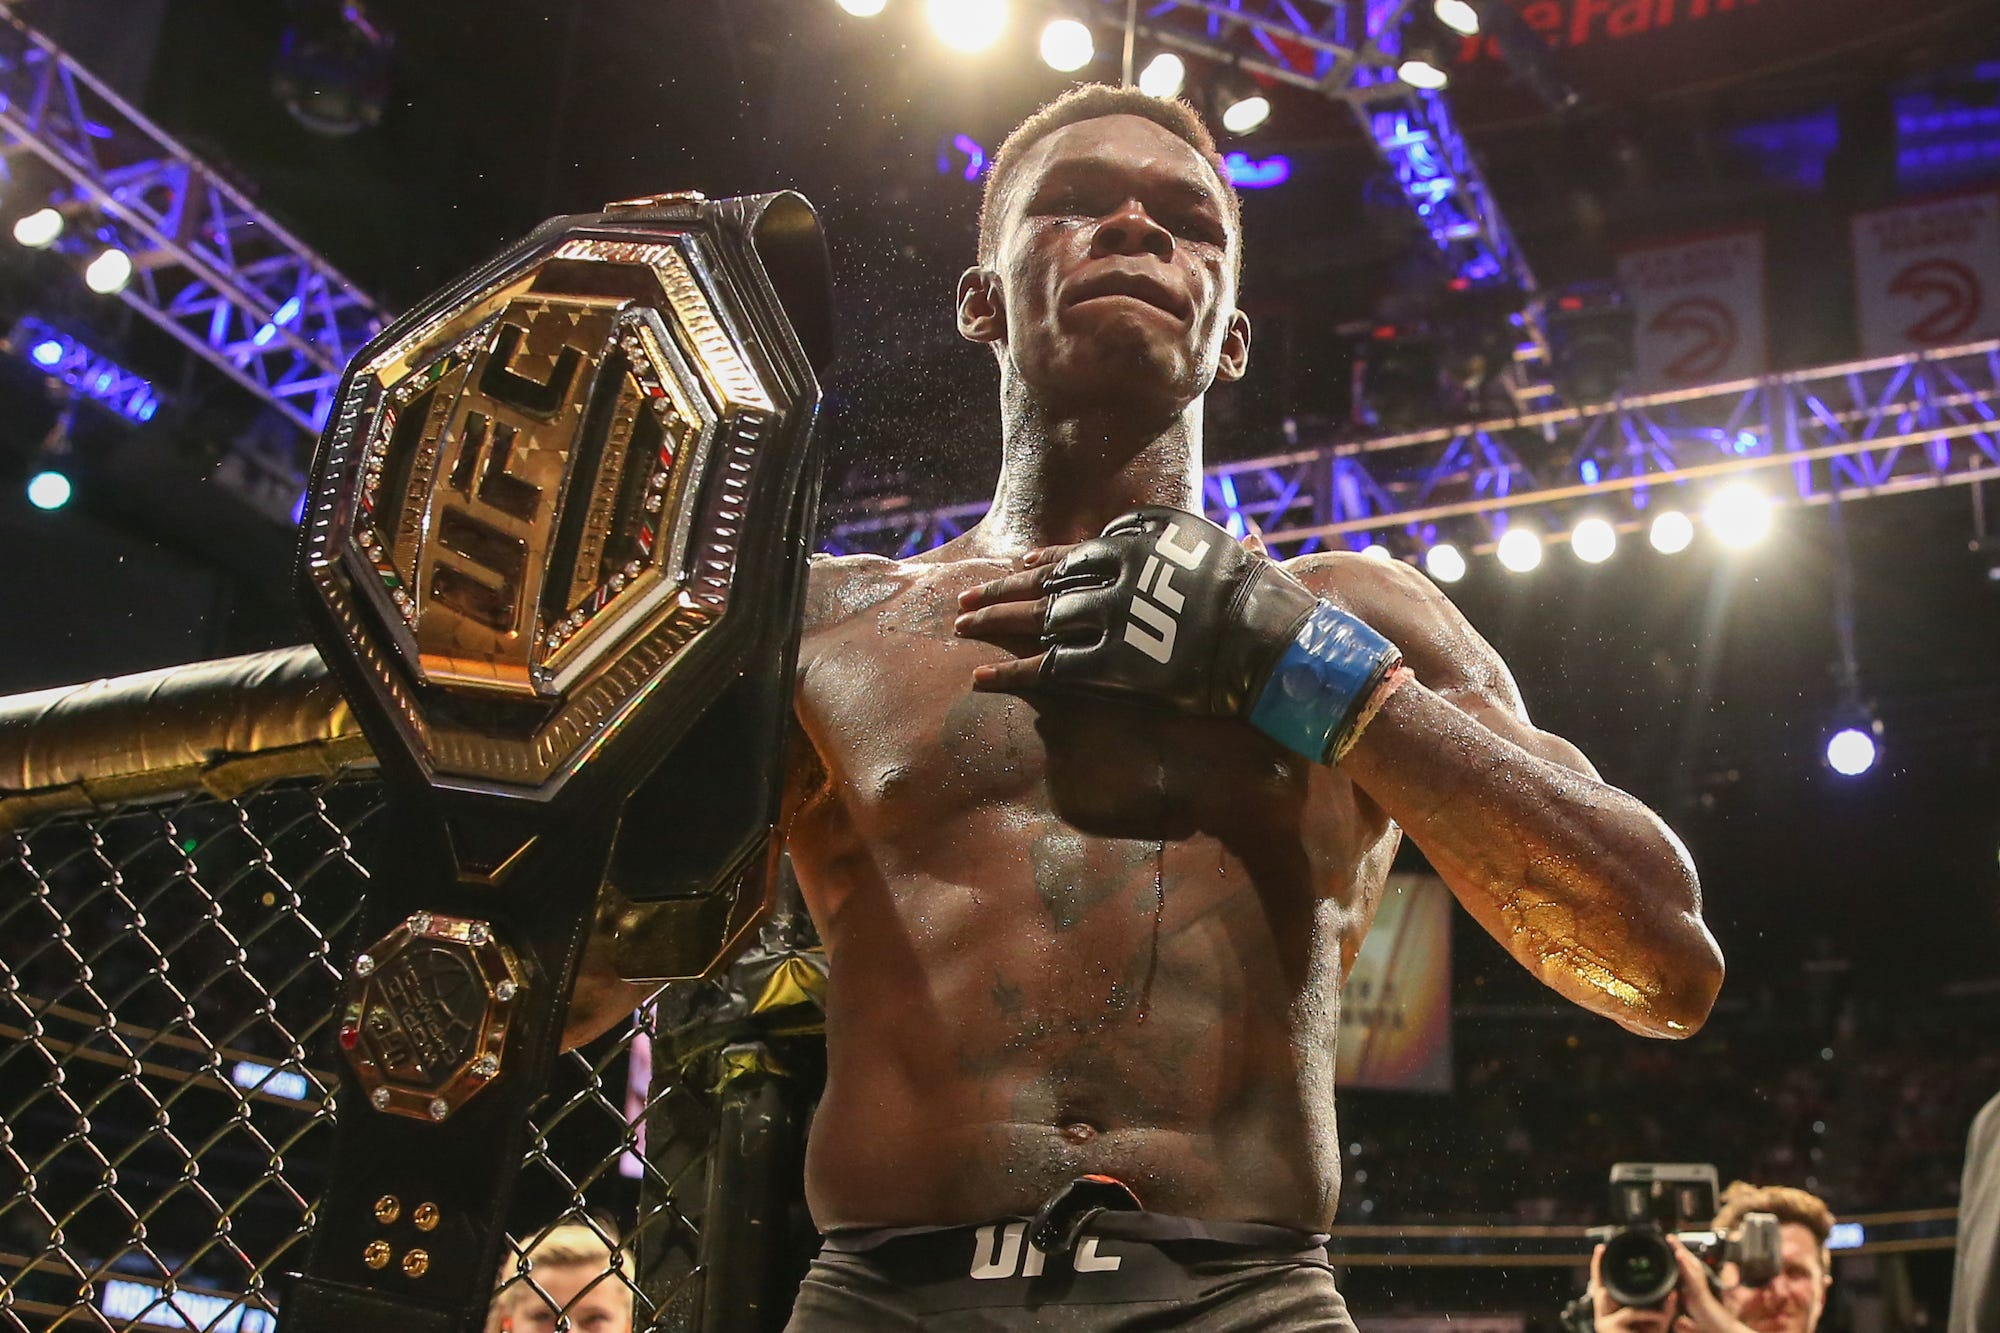 Israel Adesanya is currently the biggest showman in the UFC